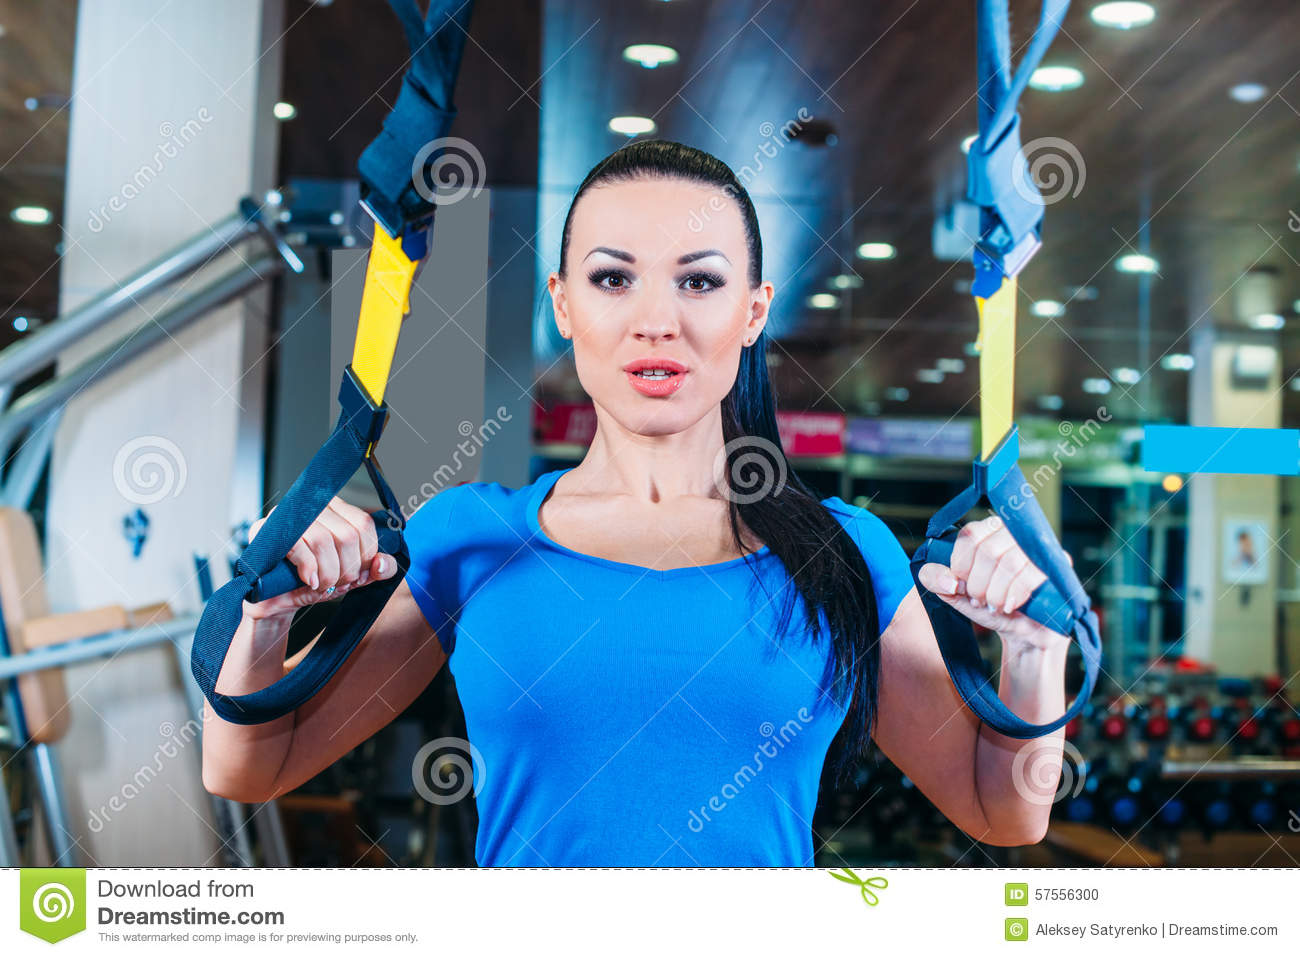 TRX. fitness, sports, exercise, technology and